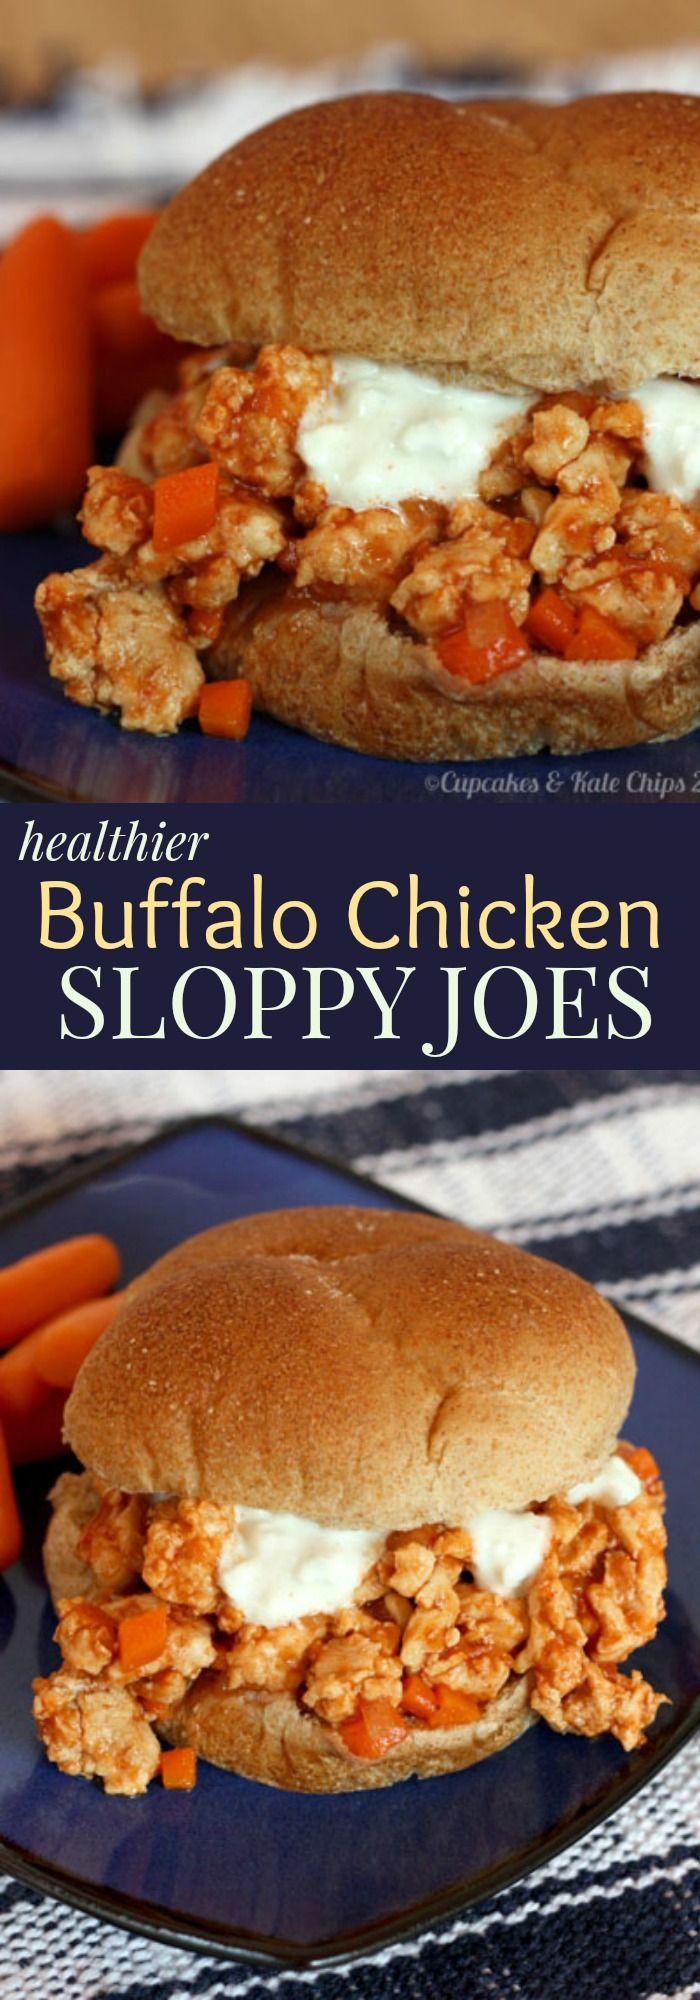 Buffalo Chicken Sloppy Joes recipe. You can get your spicy Buffalo kick in a healthier and fun way that even the kids will love.